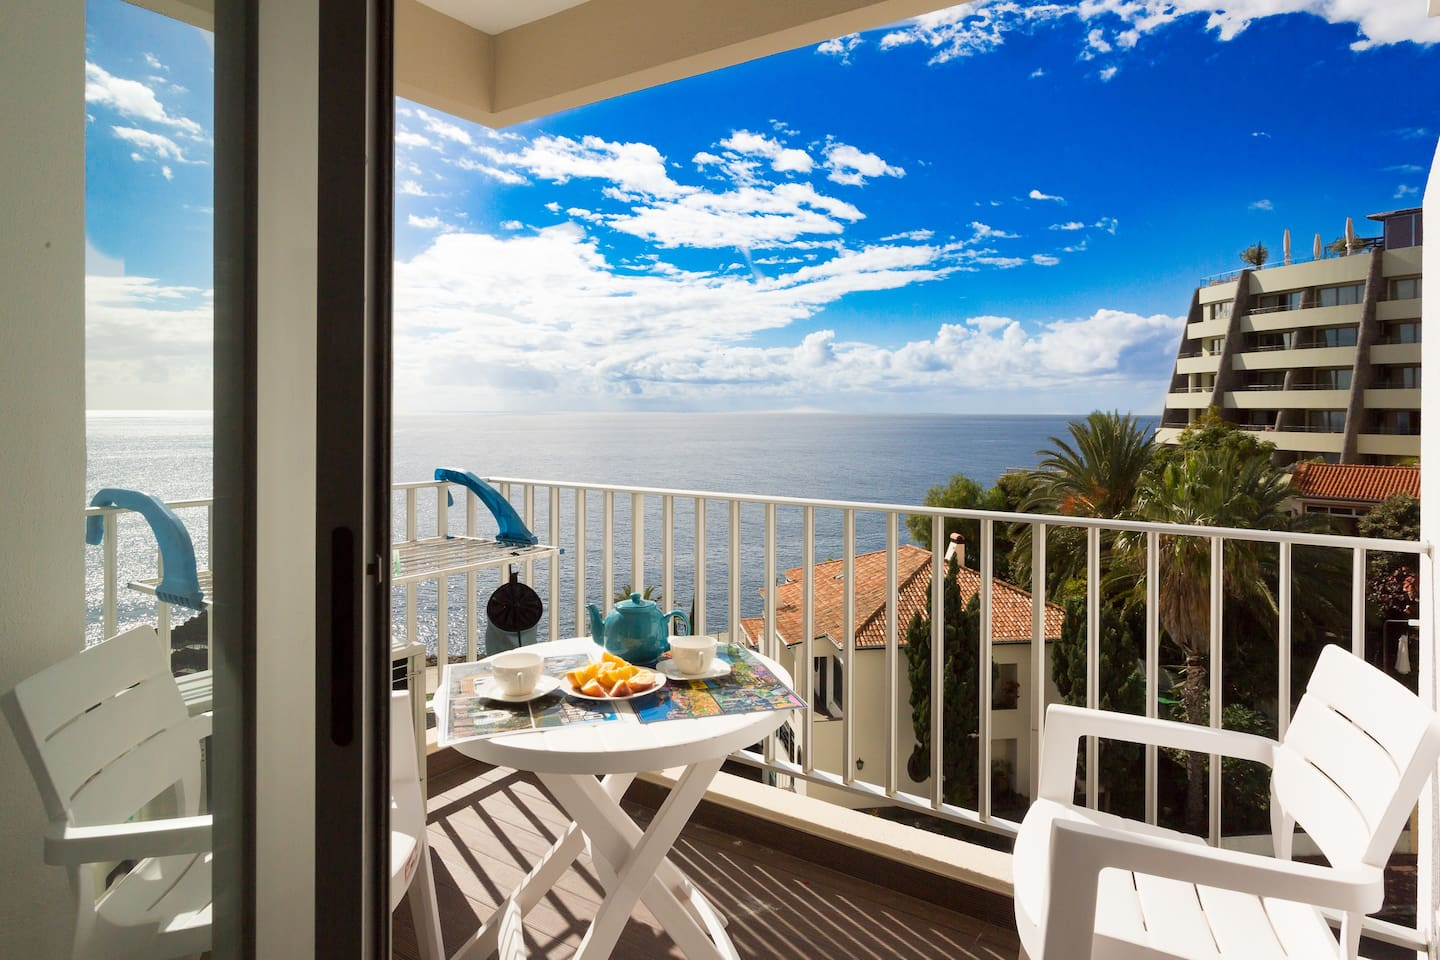 The beautiful balcony is a perfect place to enjoy breakfast, lunch, dinner or a glass of wine in the evening. With a beautiful view of the crystal clear ocean.